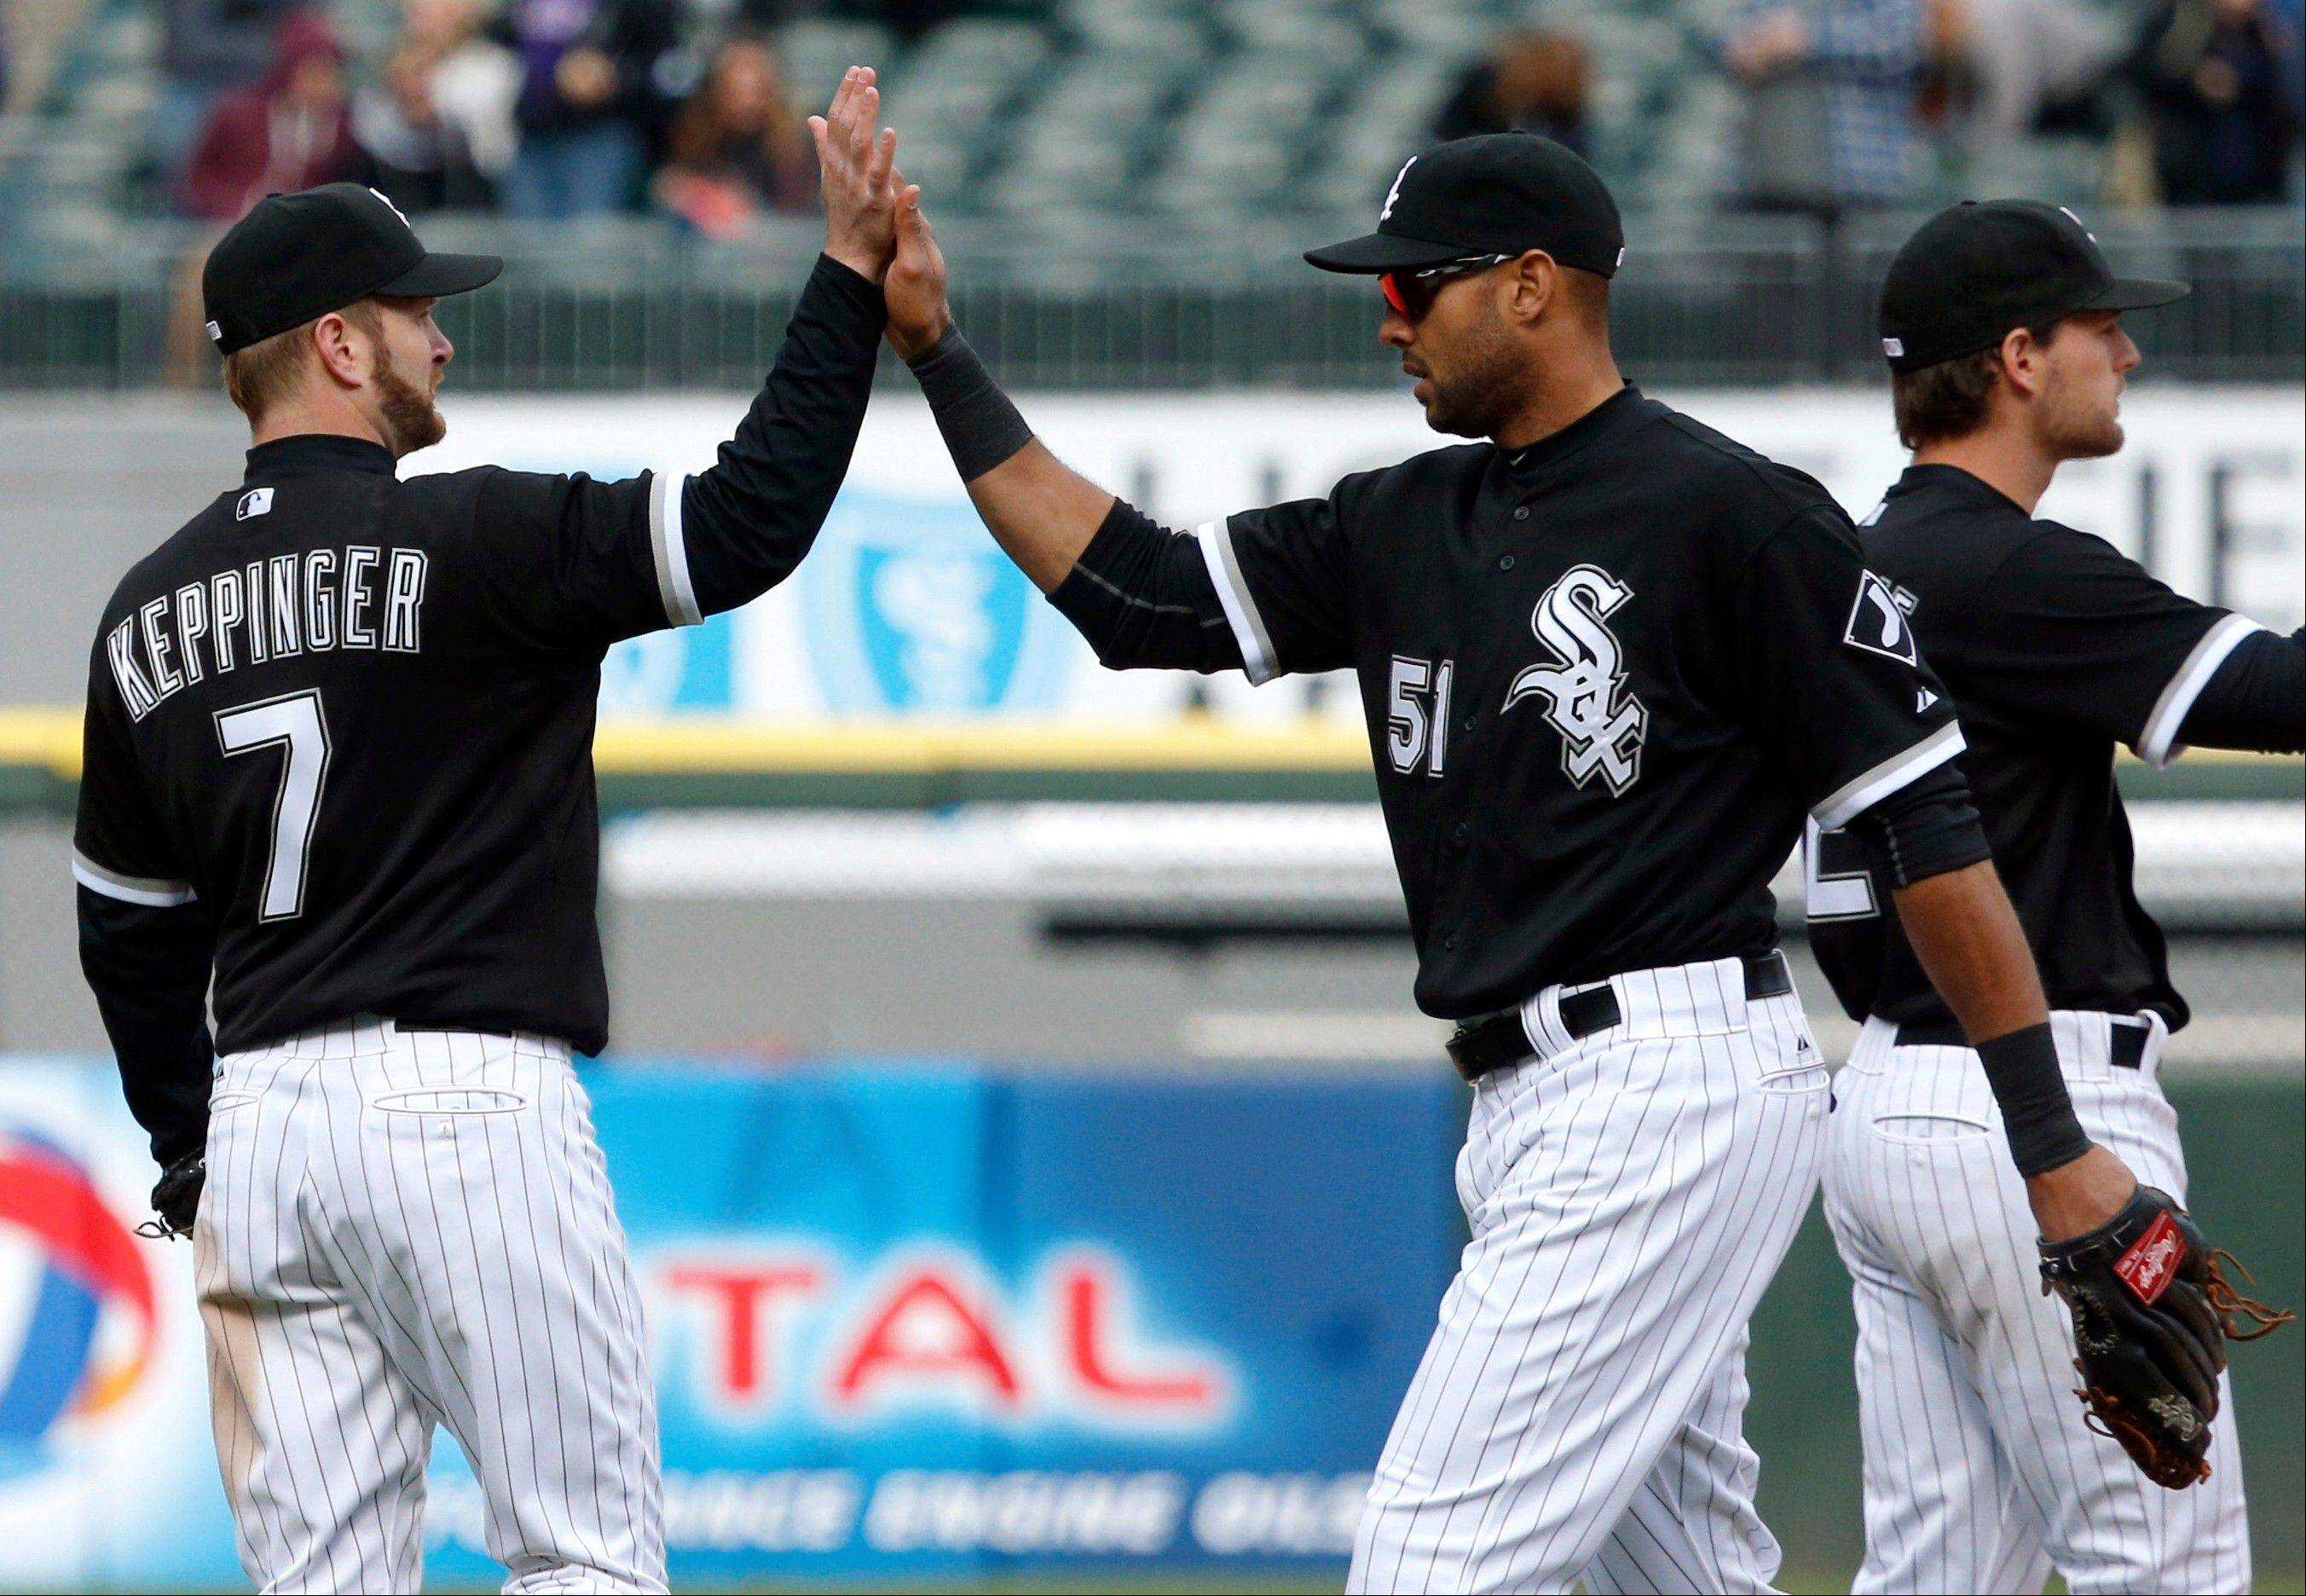 Chicago White Sox third baseman Jeff Keppinger (7) celebrates with right fielder Alex Rios (51) after their 3-2 win over the Cleveland Indians in a baseball game, Wednesday, April 24, 2013, in Chicago.